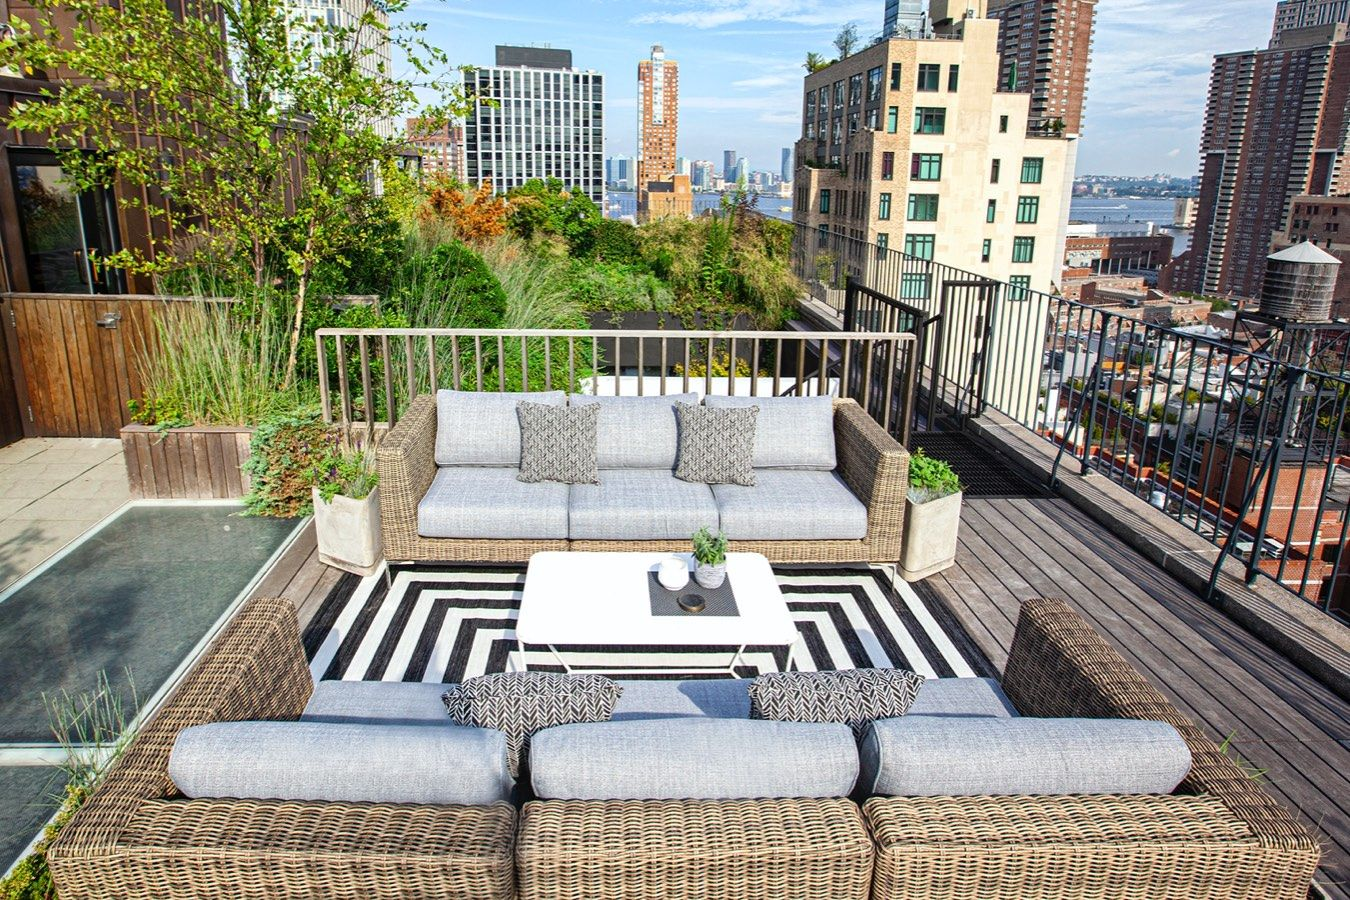 Roof top furniture that has performance fabric